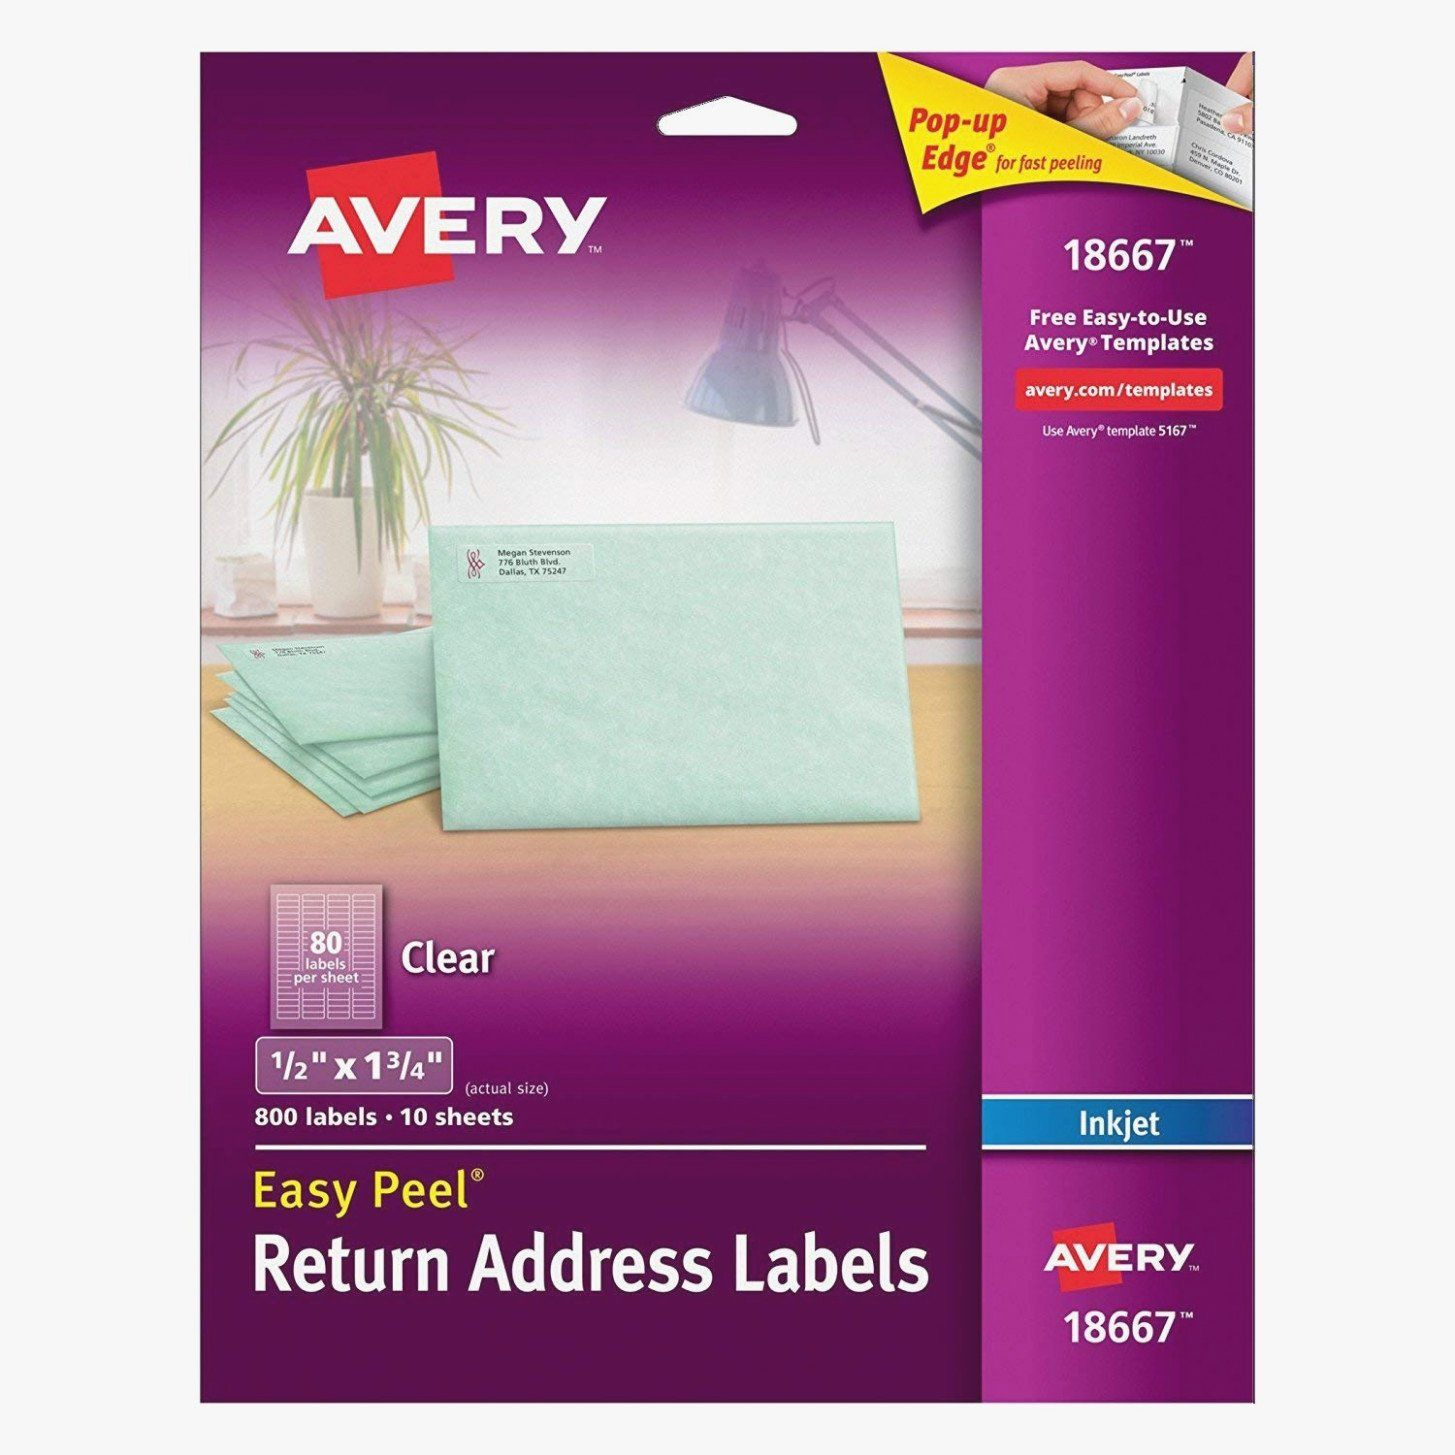 Avery Return Address Labels 5267 New Ten Things To Know About Avery Return Address Labels 14 Tem In 2020 Clear Return Address Labels Return Address Labels Clear Labels